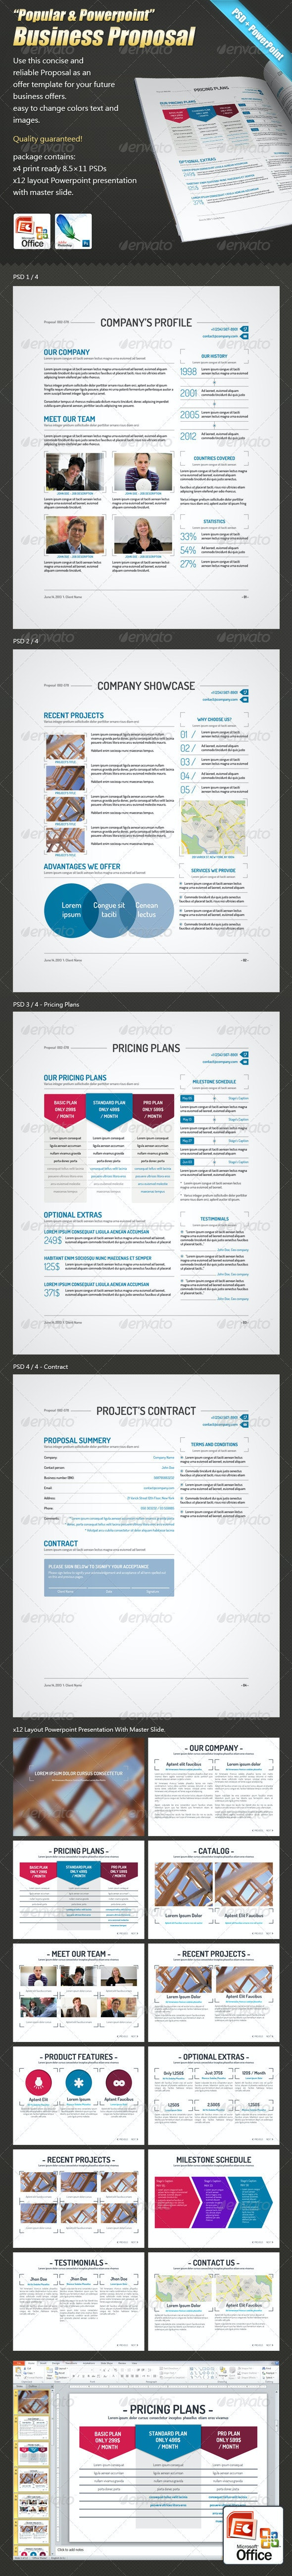 """""""Popular & Powerpoint""""- Business Proposal+Contract - Proposals & Invoices Stationery"""